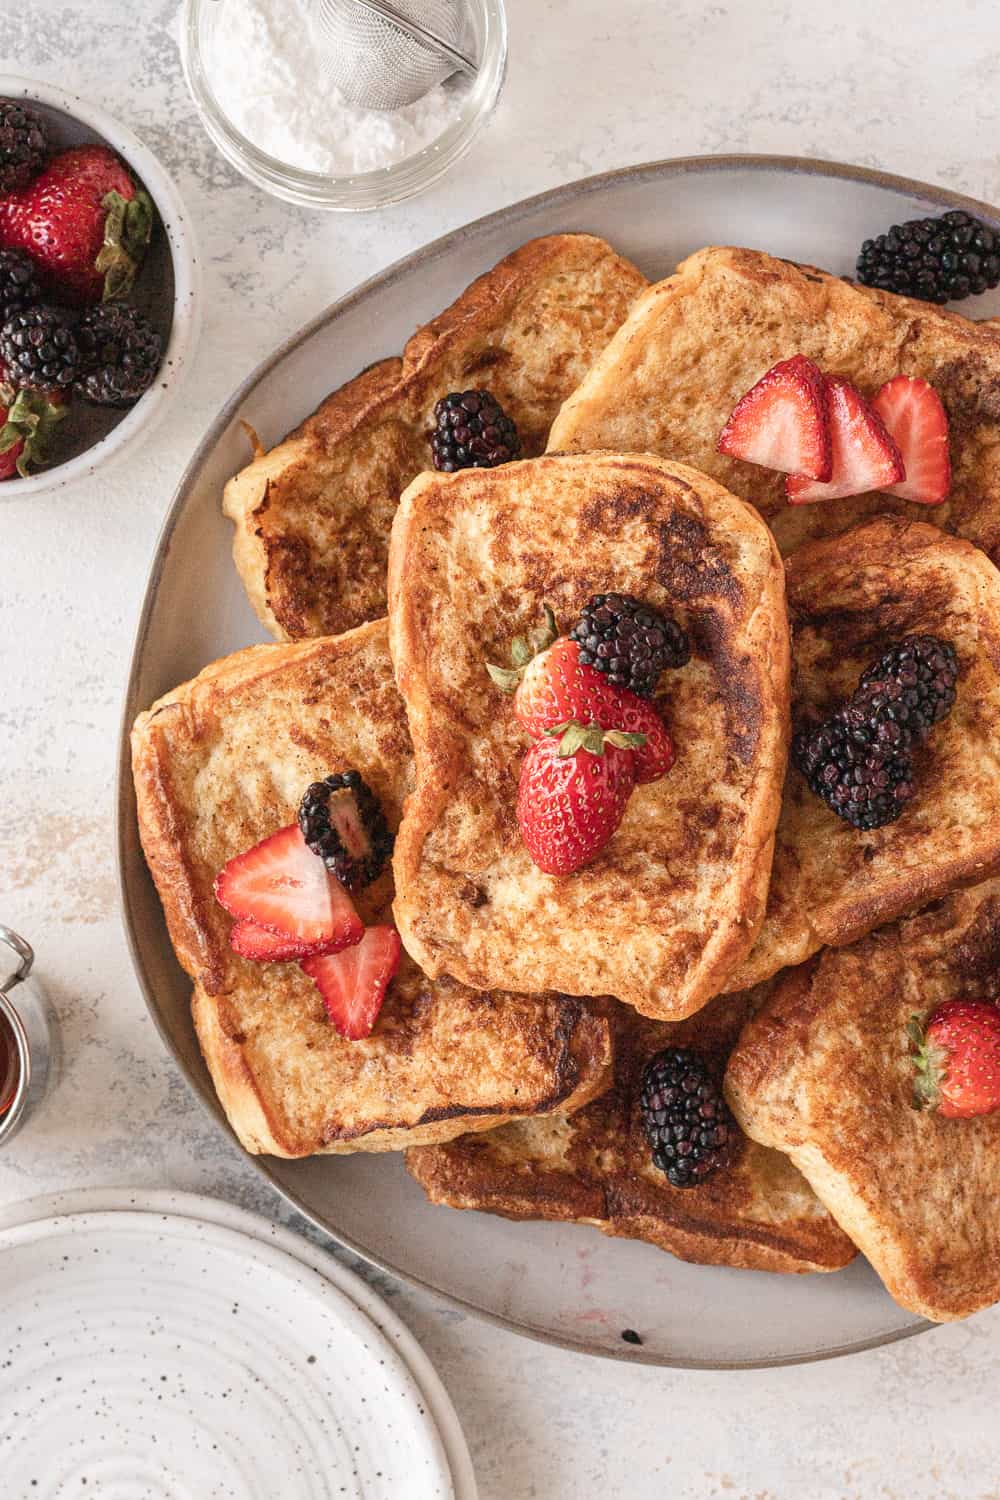 overhead view of a large platter of cooked french toast with powdered sugar, berries, and syrup on the side